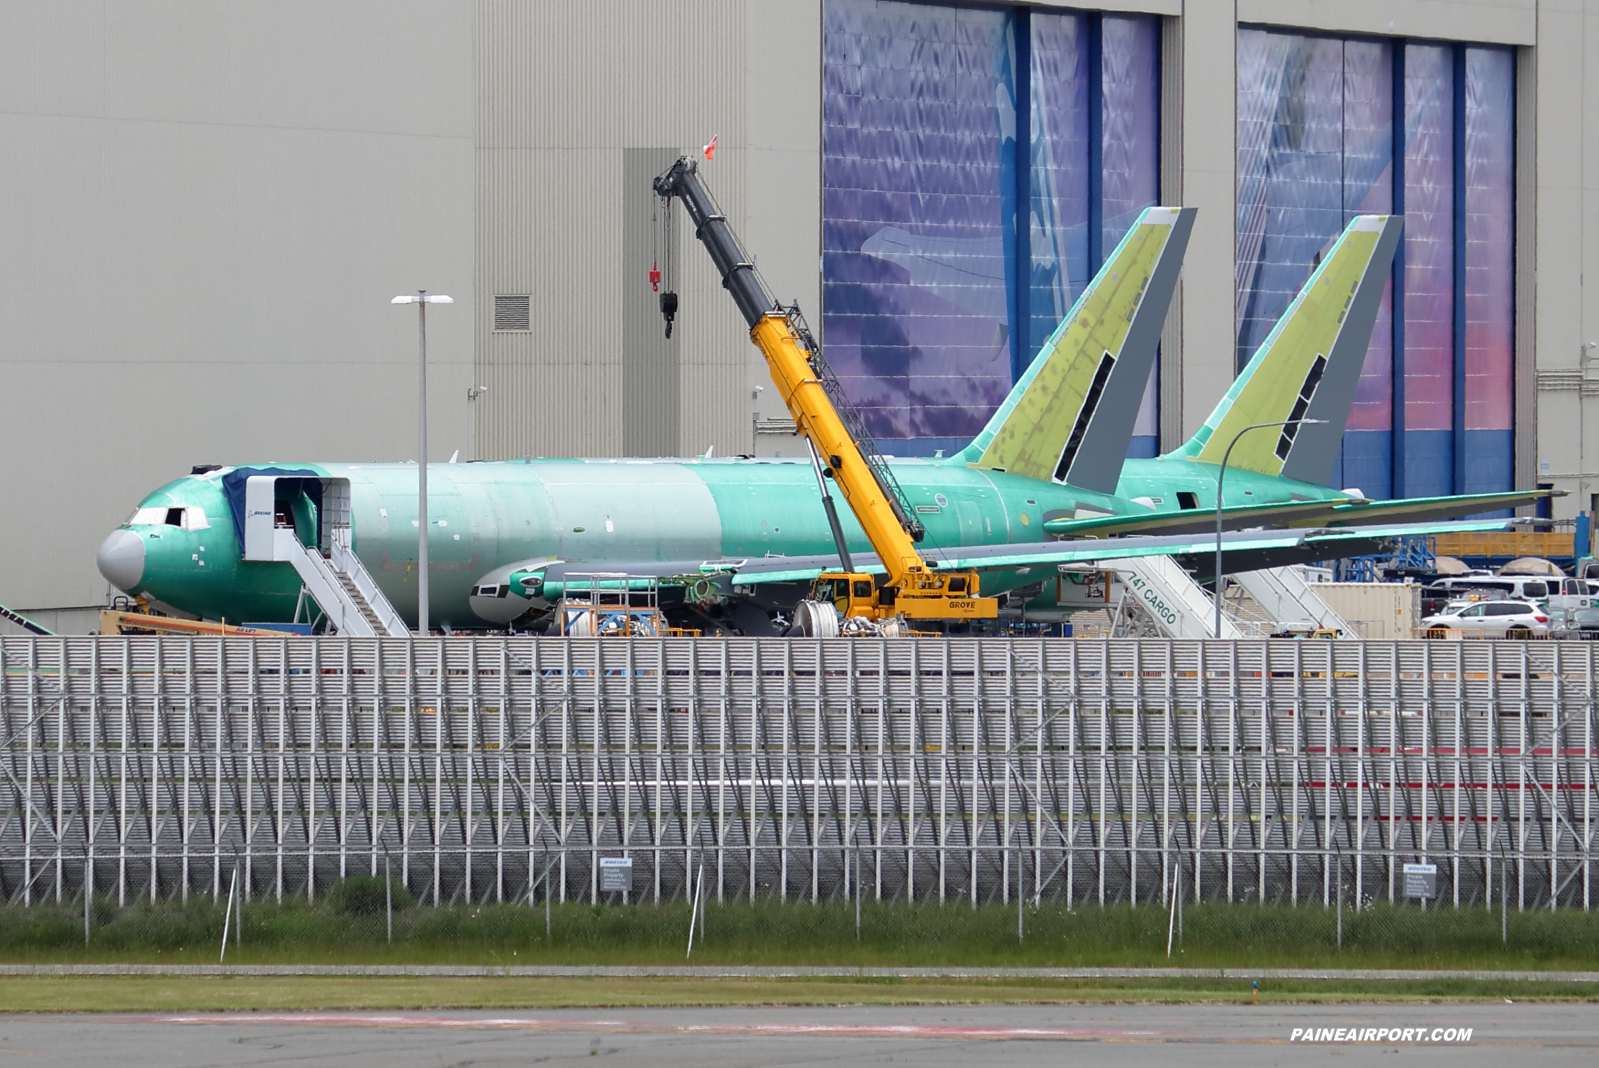 KC-46A line 1213 at Paine Field